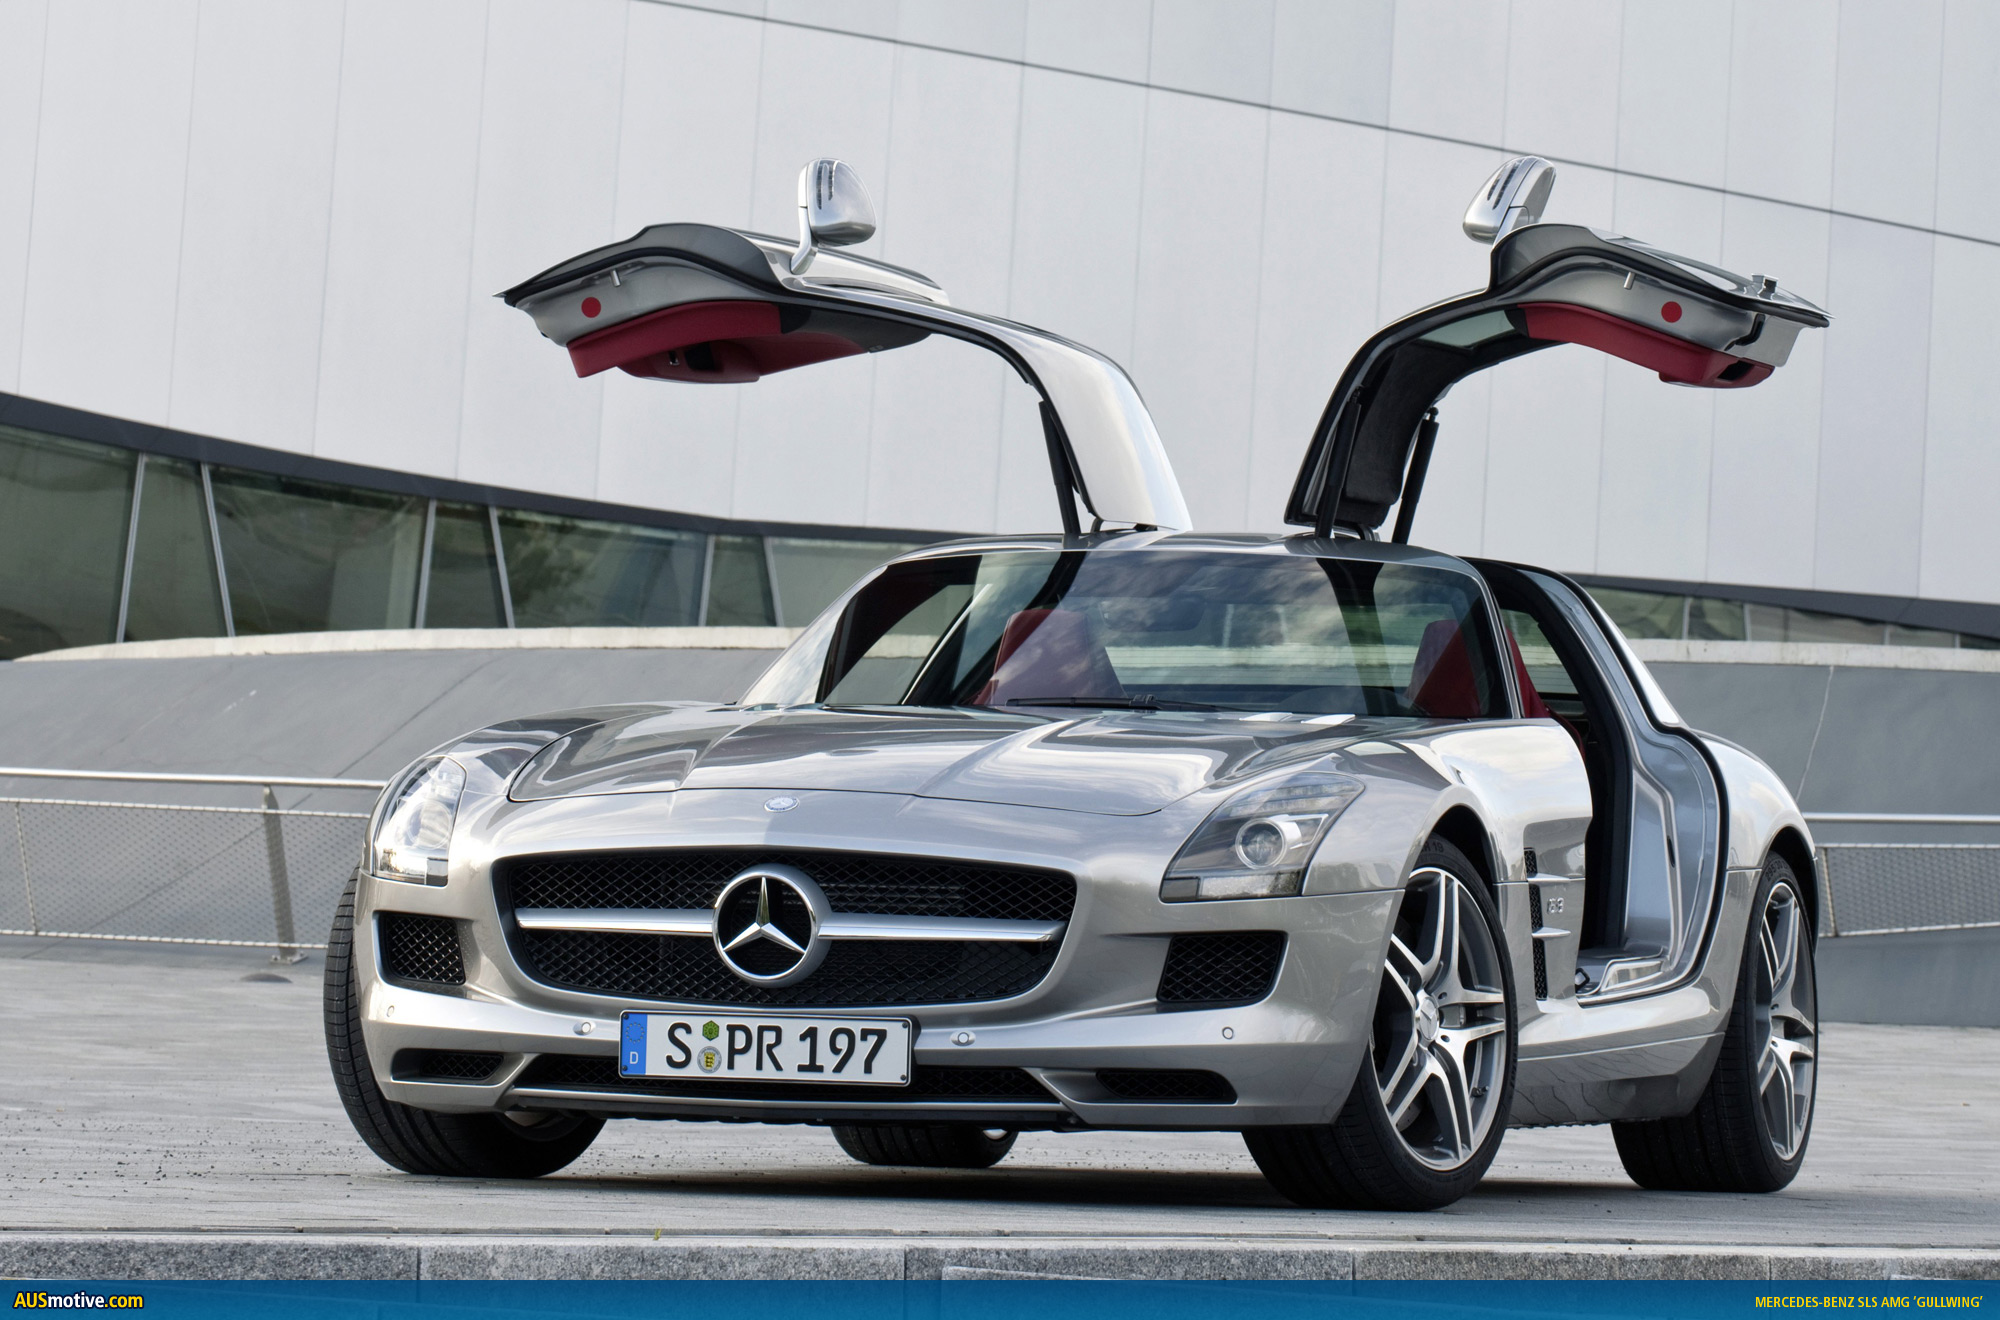 Gullwing set to land under $500K & AUSmotive.com » Gullwing set to land under $500K